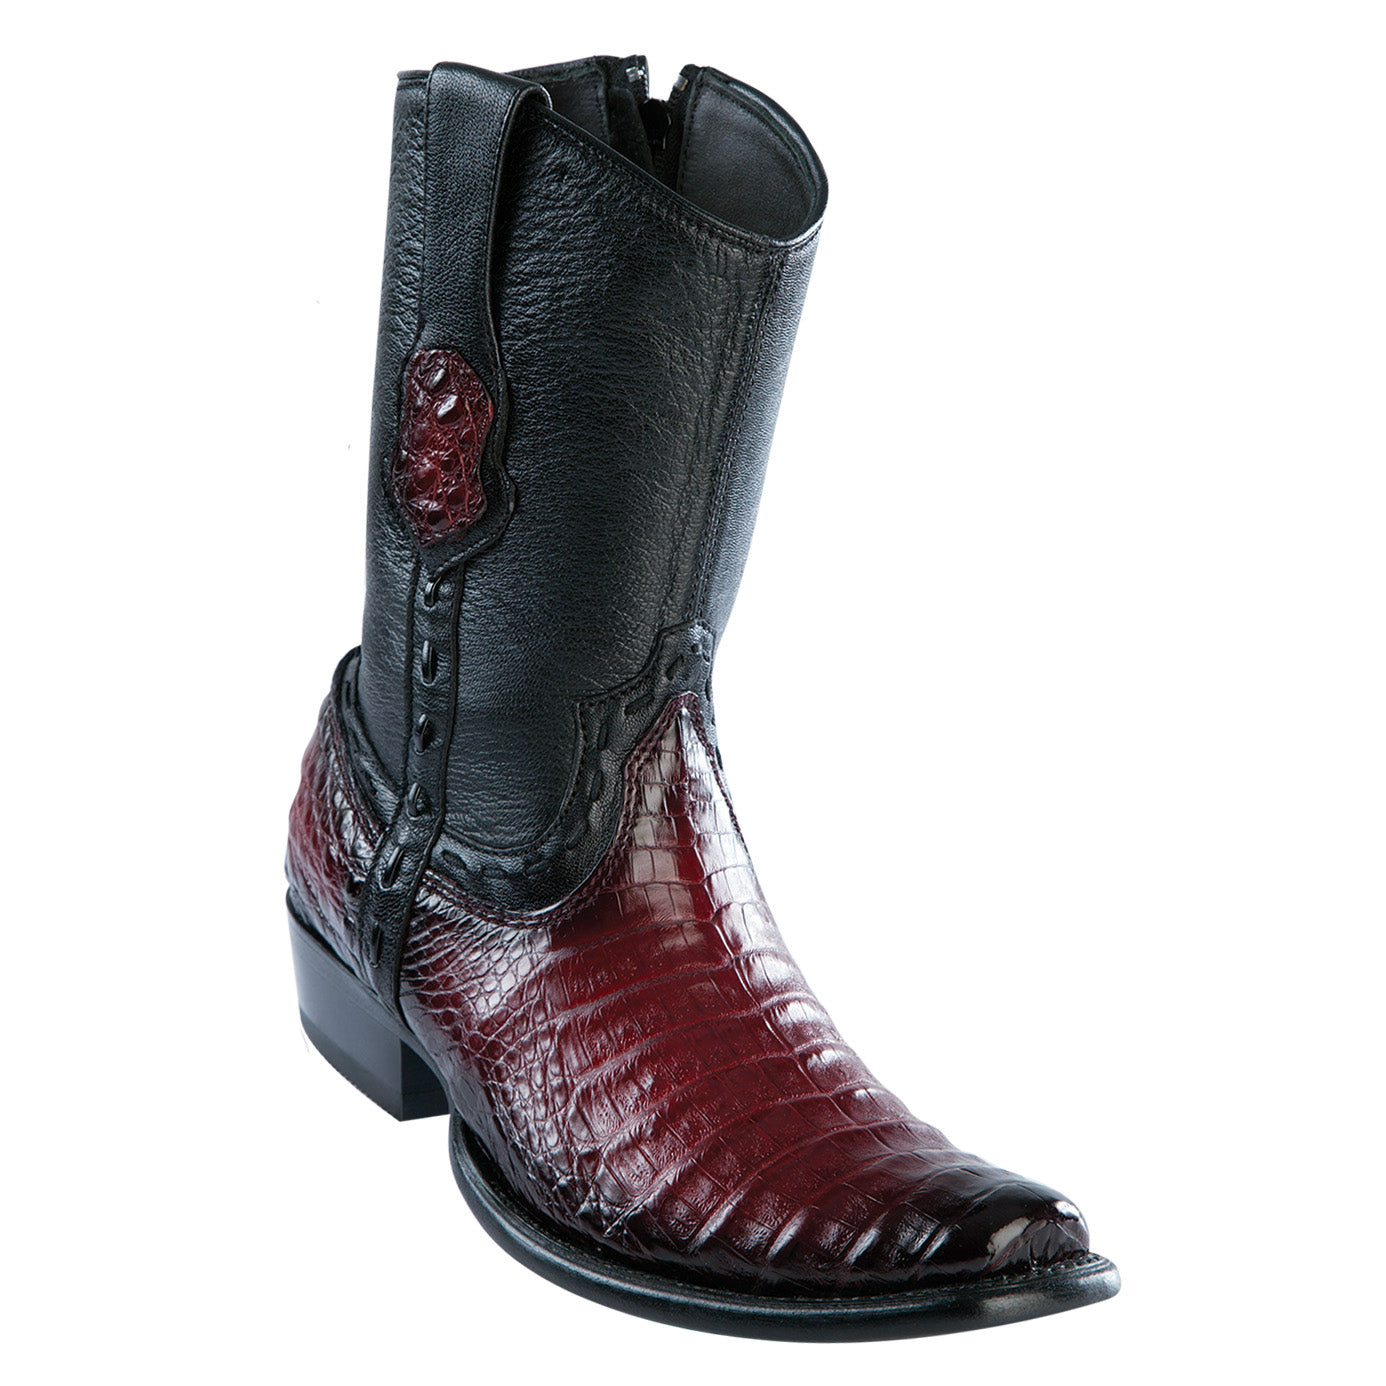 Wild West Boots - Men's Caiman Belly Dubai Short Boot